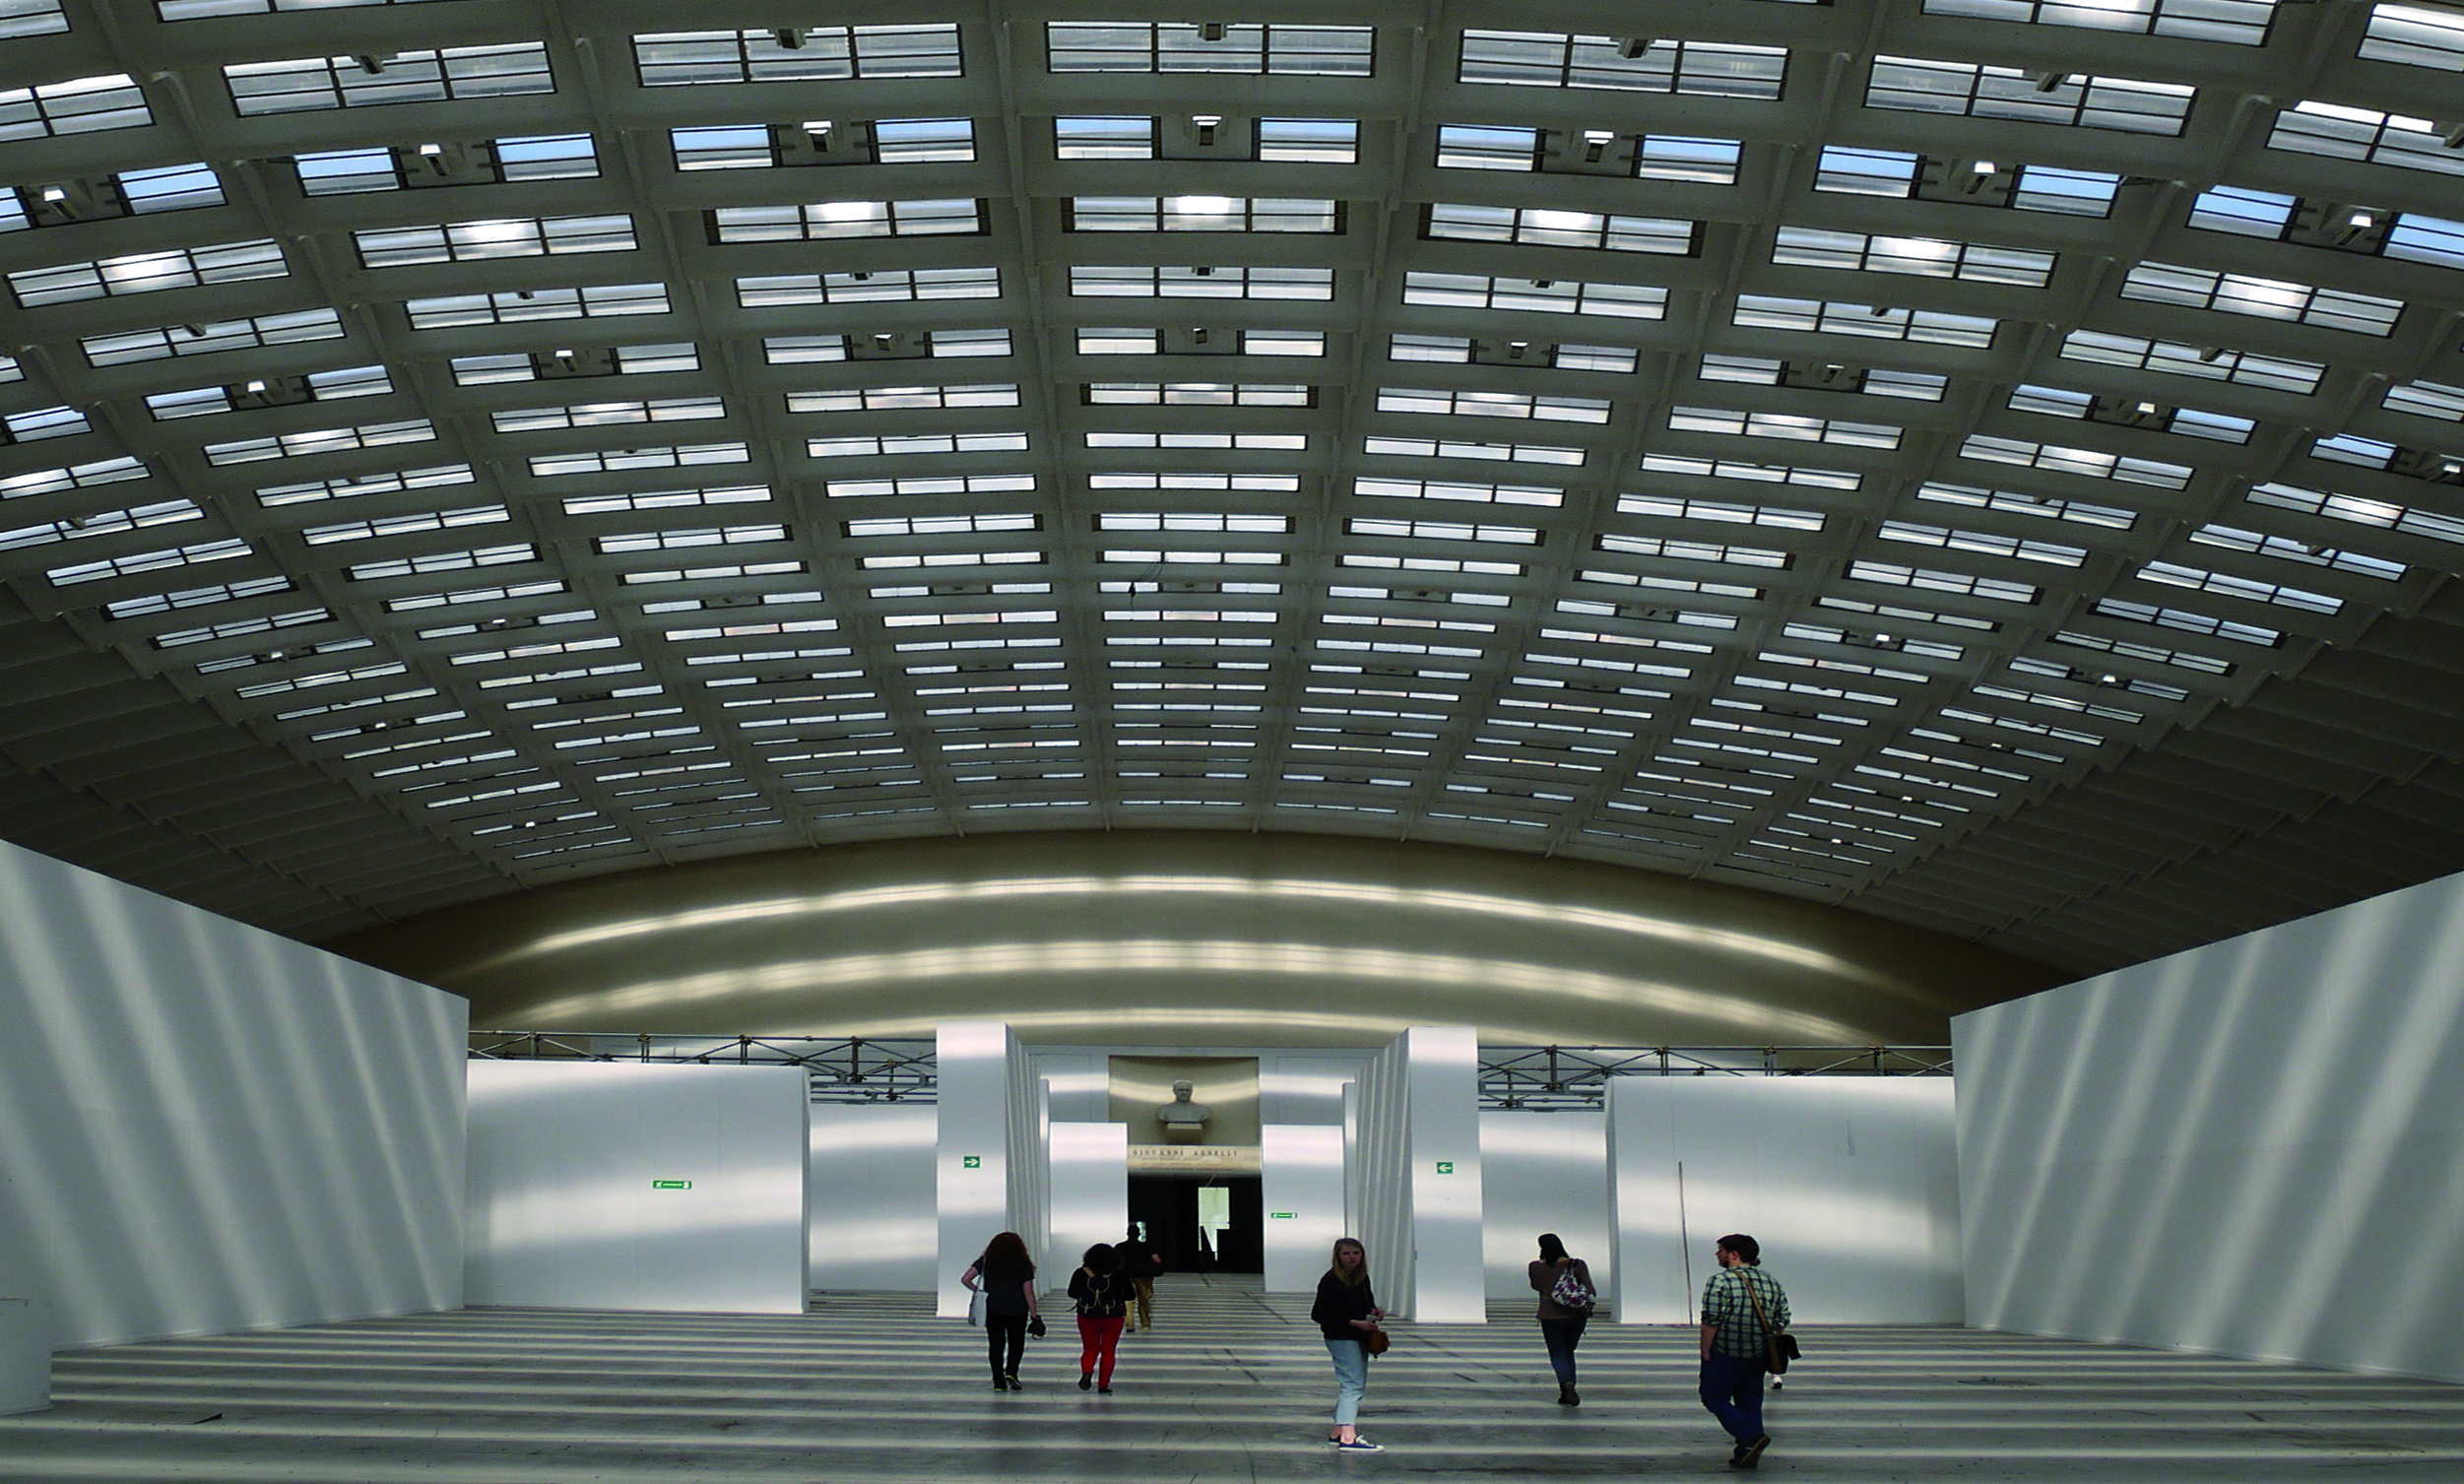 The building by Pier Luigi Nervi.